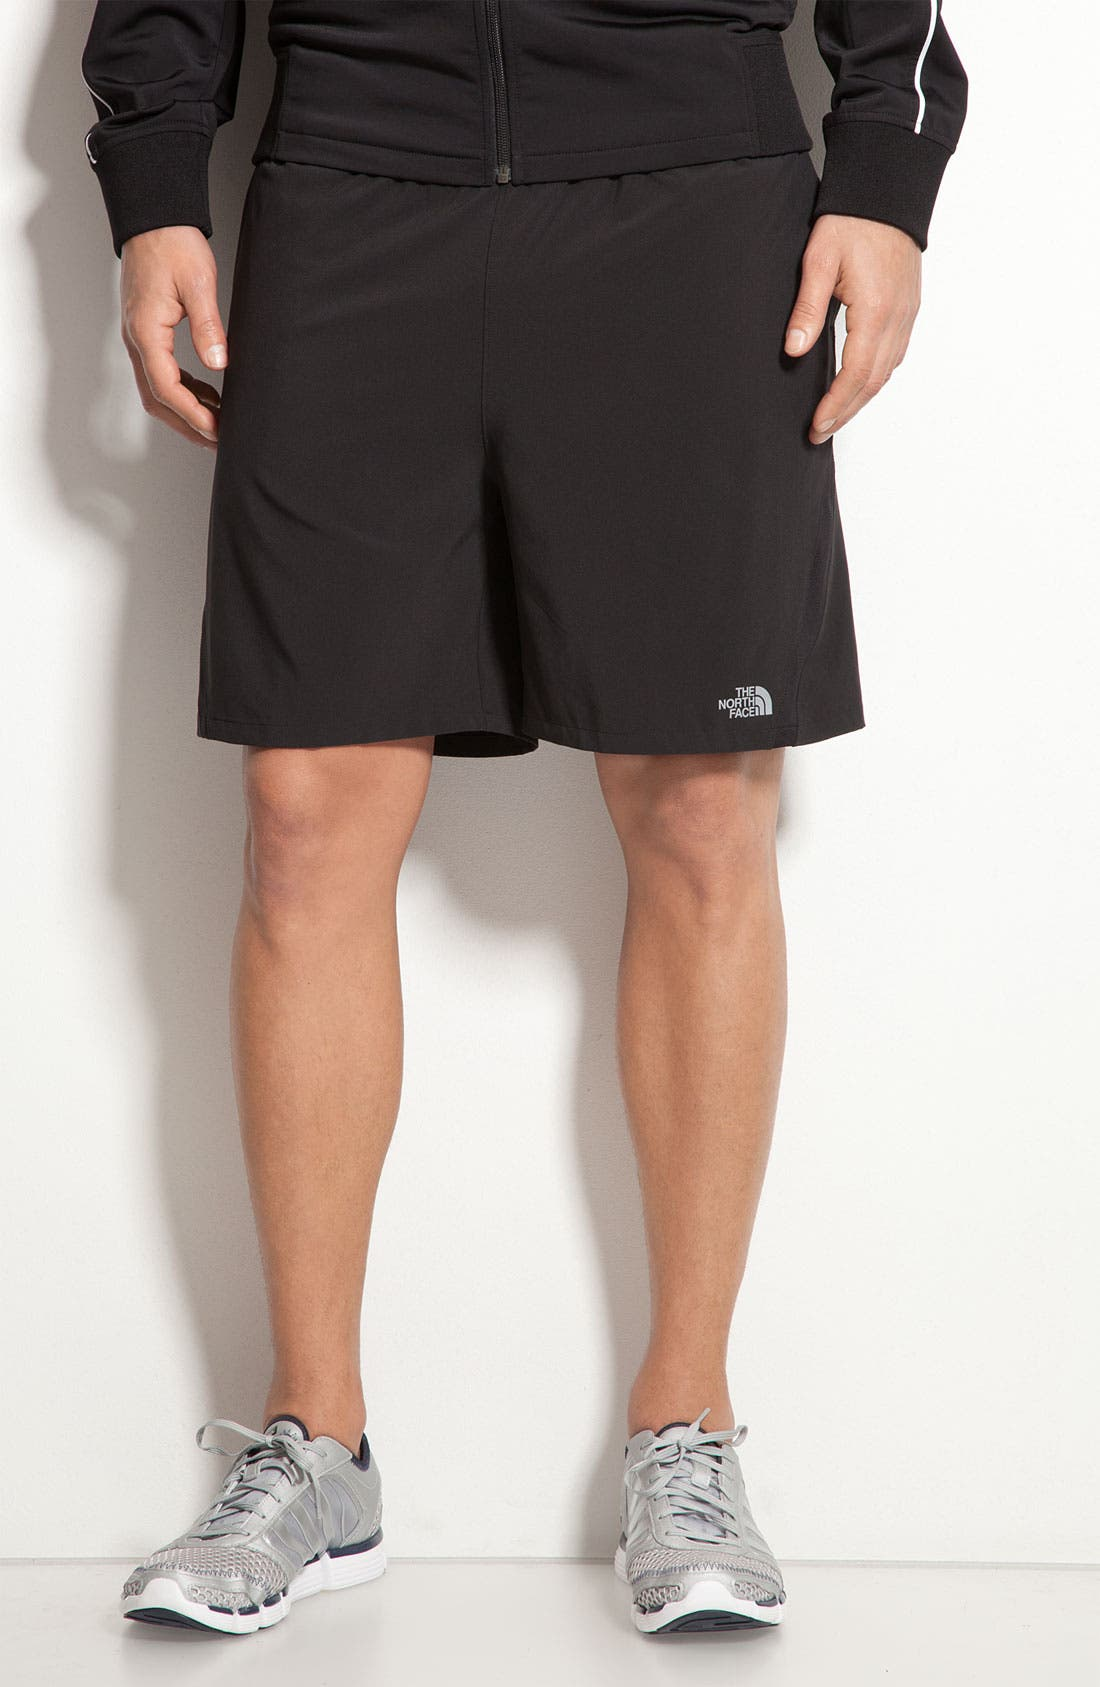 Main Image - The North Face 'Agility' Stretch Woven Short